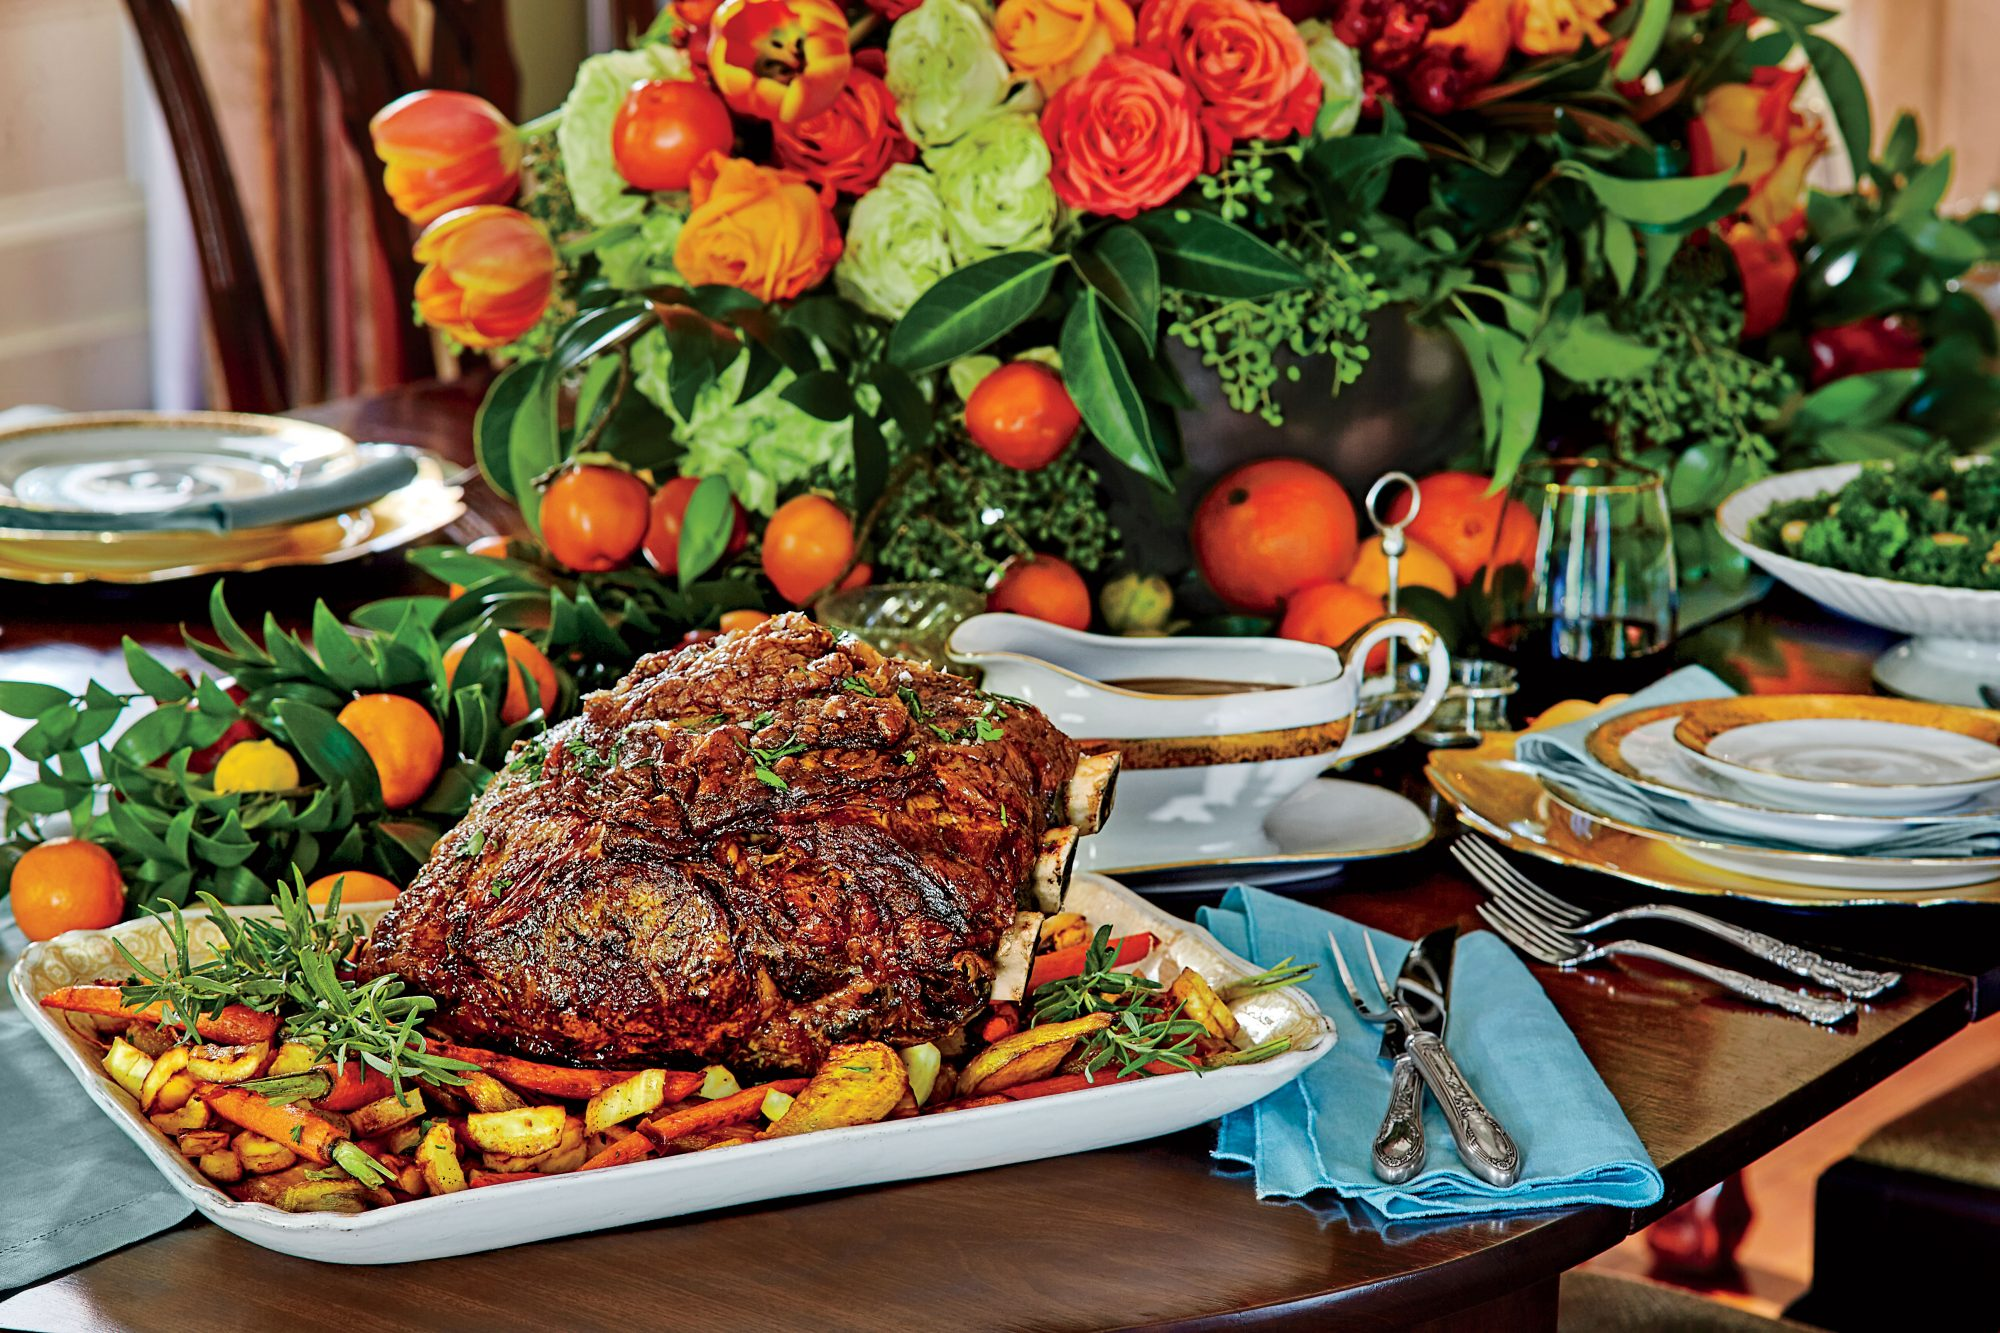 Peppercorn-Crusted Standing Rib Roast with Roasted Vegetables